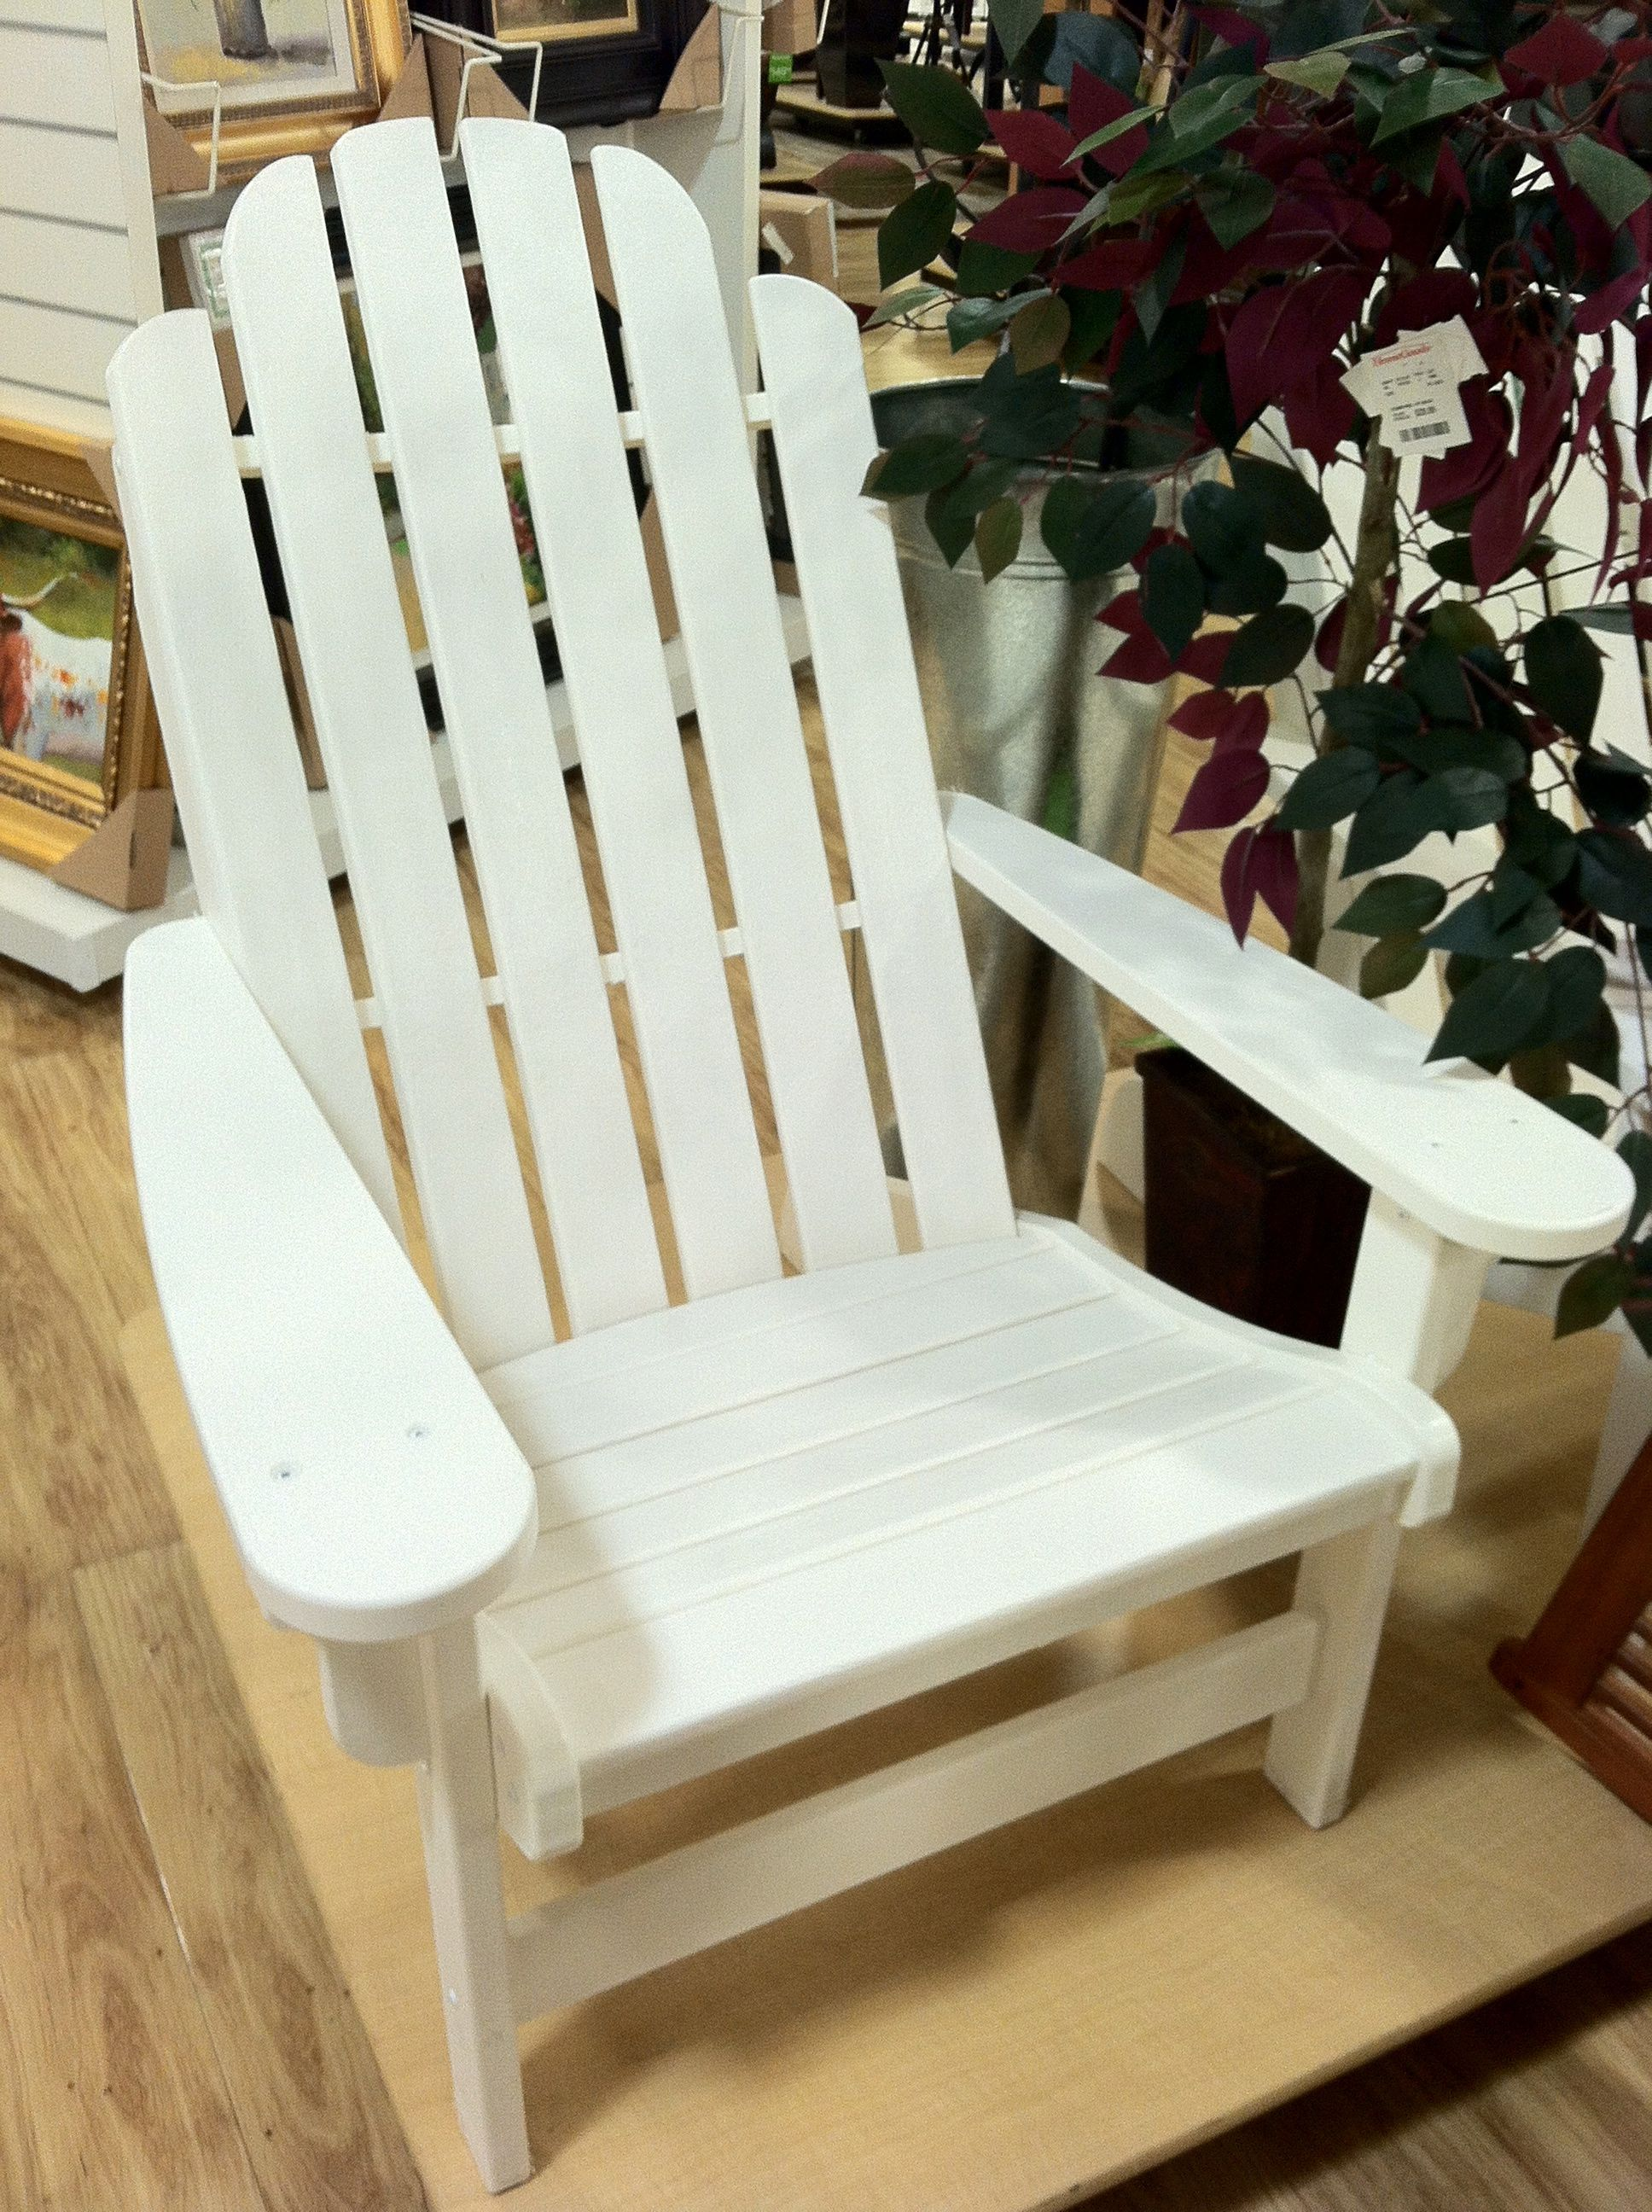 ideas for painting adirondack chairs revolving chair manufacturers in ulhasnagar plans to build how paint wood pdf